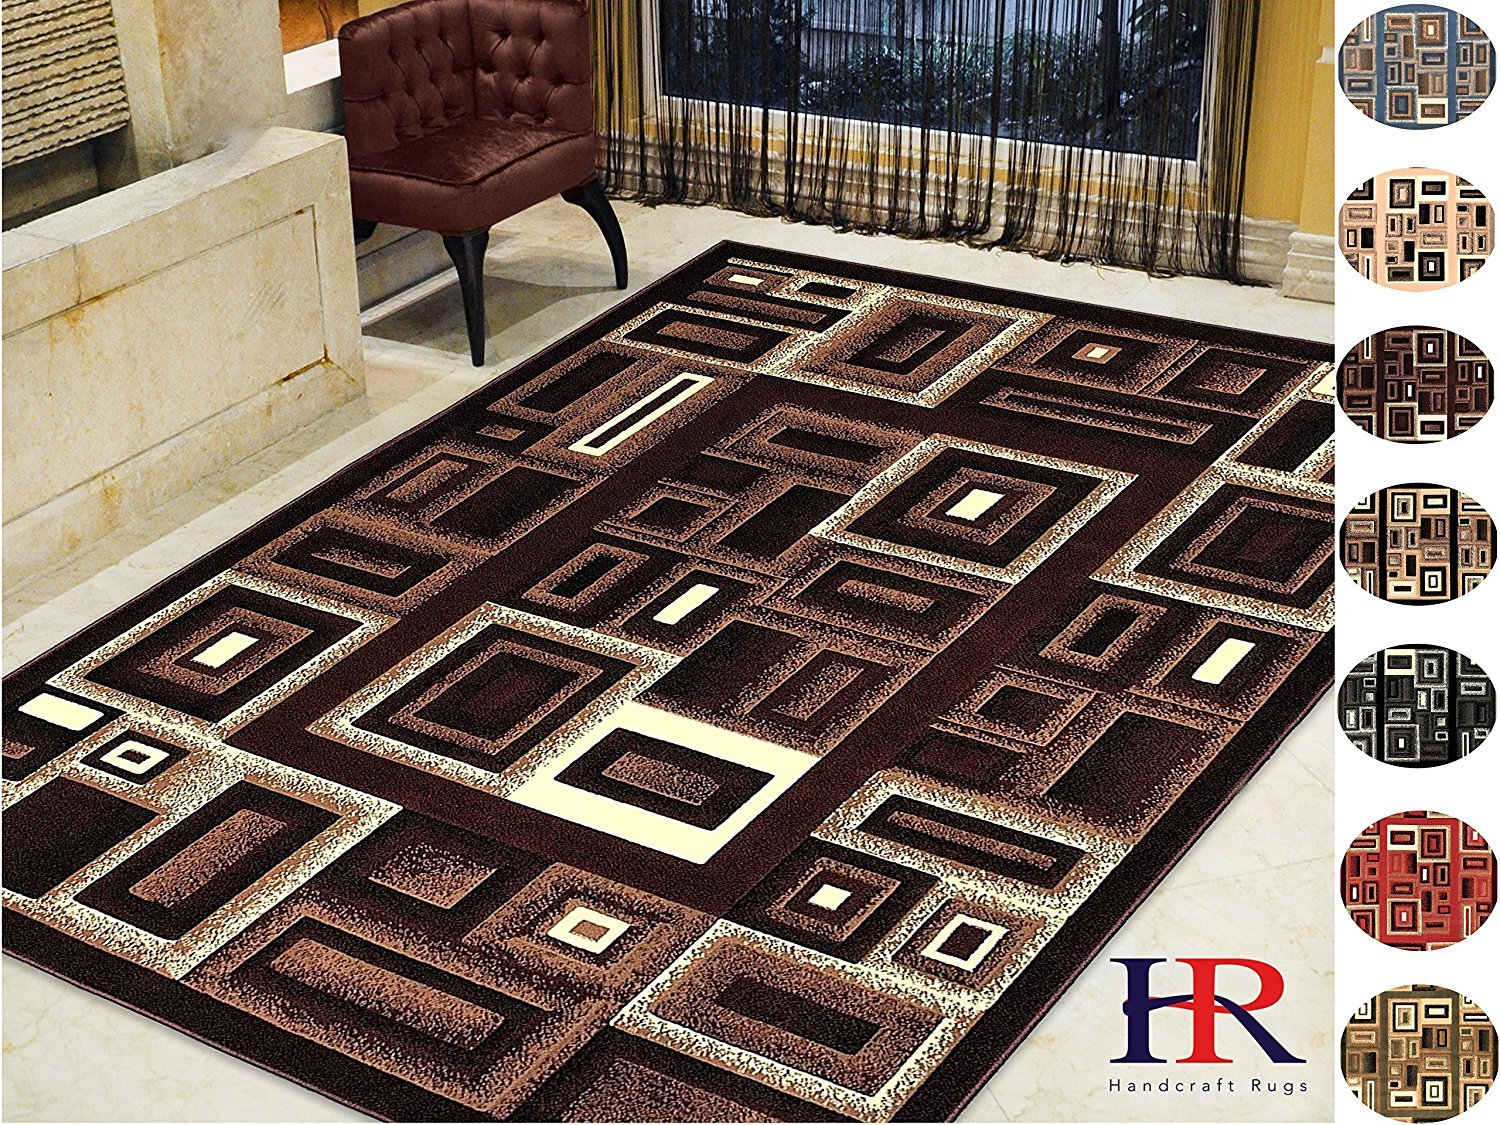 Handcraft Rugs Modern Contemporary Brand New Area Rugs